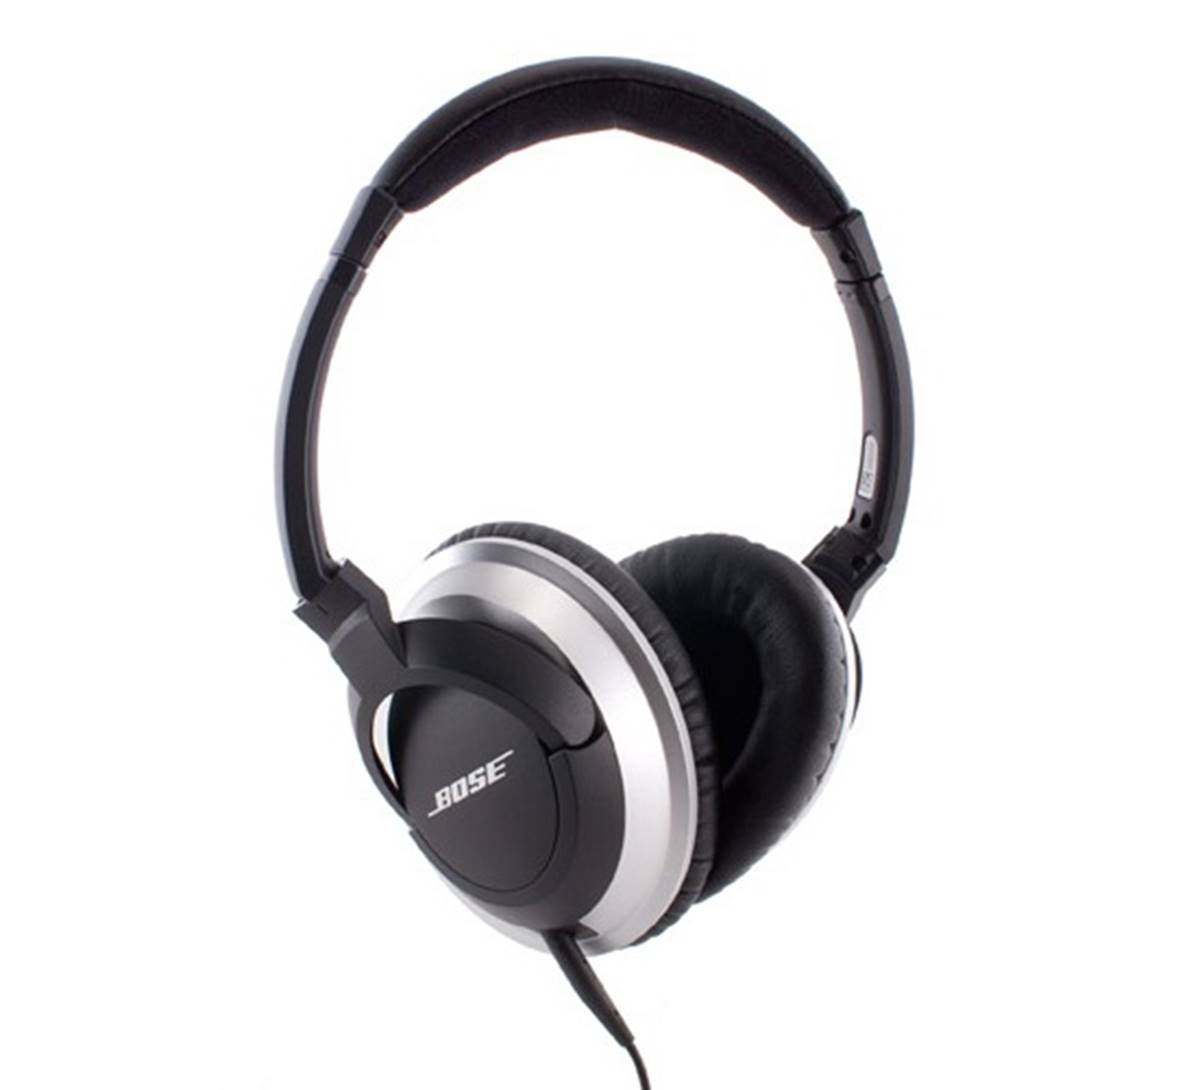 Bose AE2 Around Ear Headphone